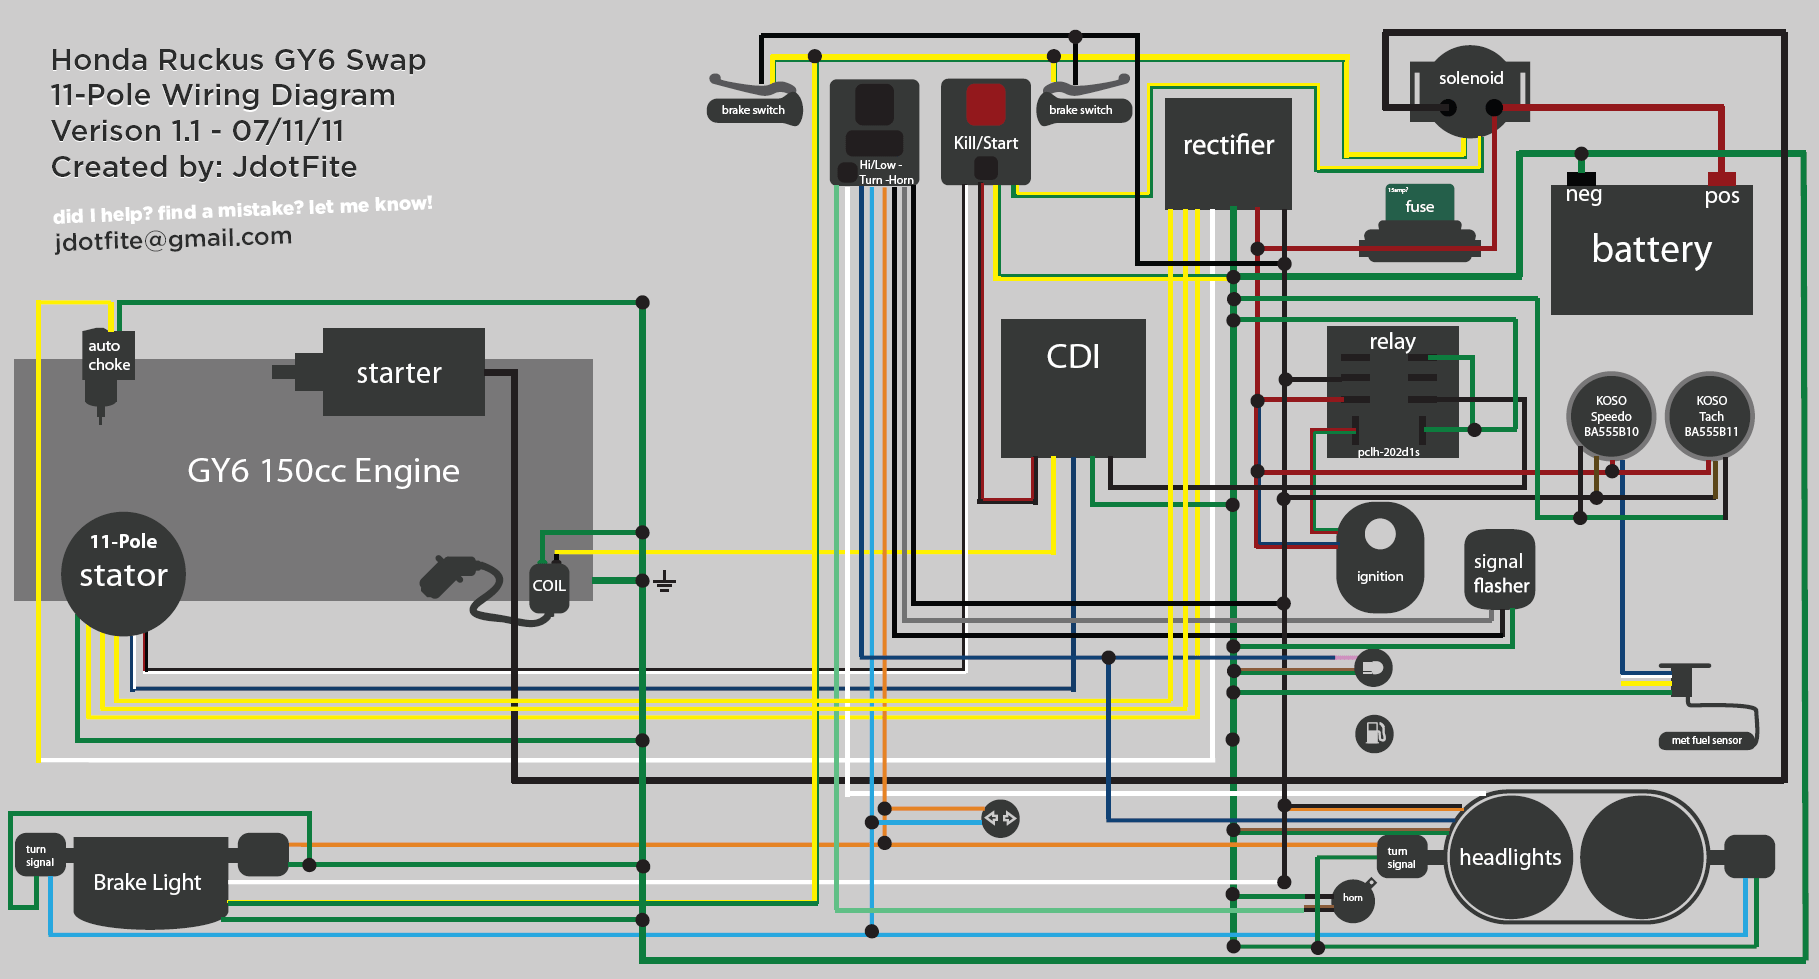 ruckus gy6 wiring diagram gy6 stator wiring gy6 engine wiring \u2022 wiring diagrams j squared co scooter ignition wiring diagram at alyssarenee.co